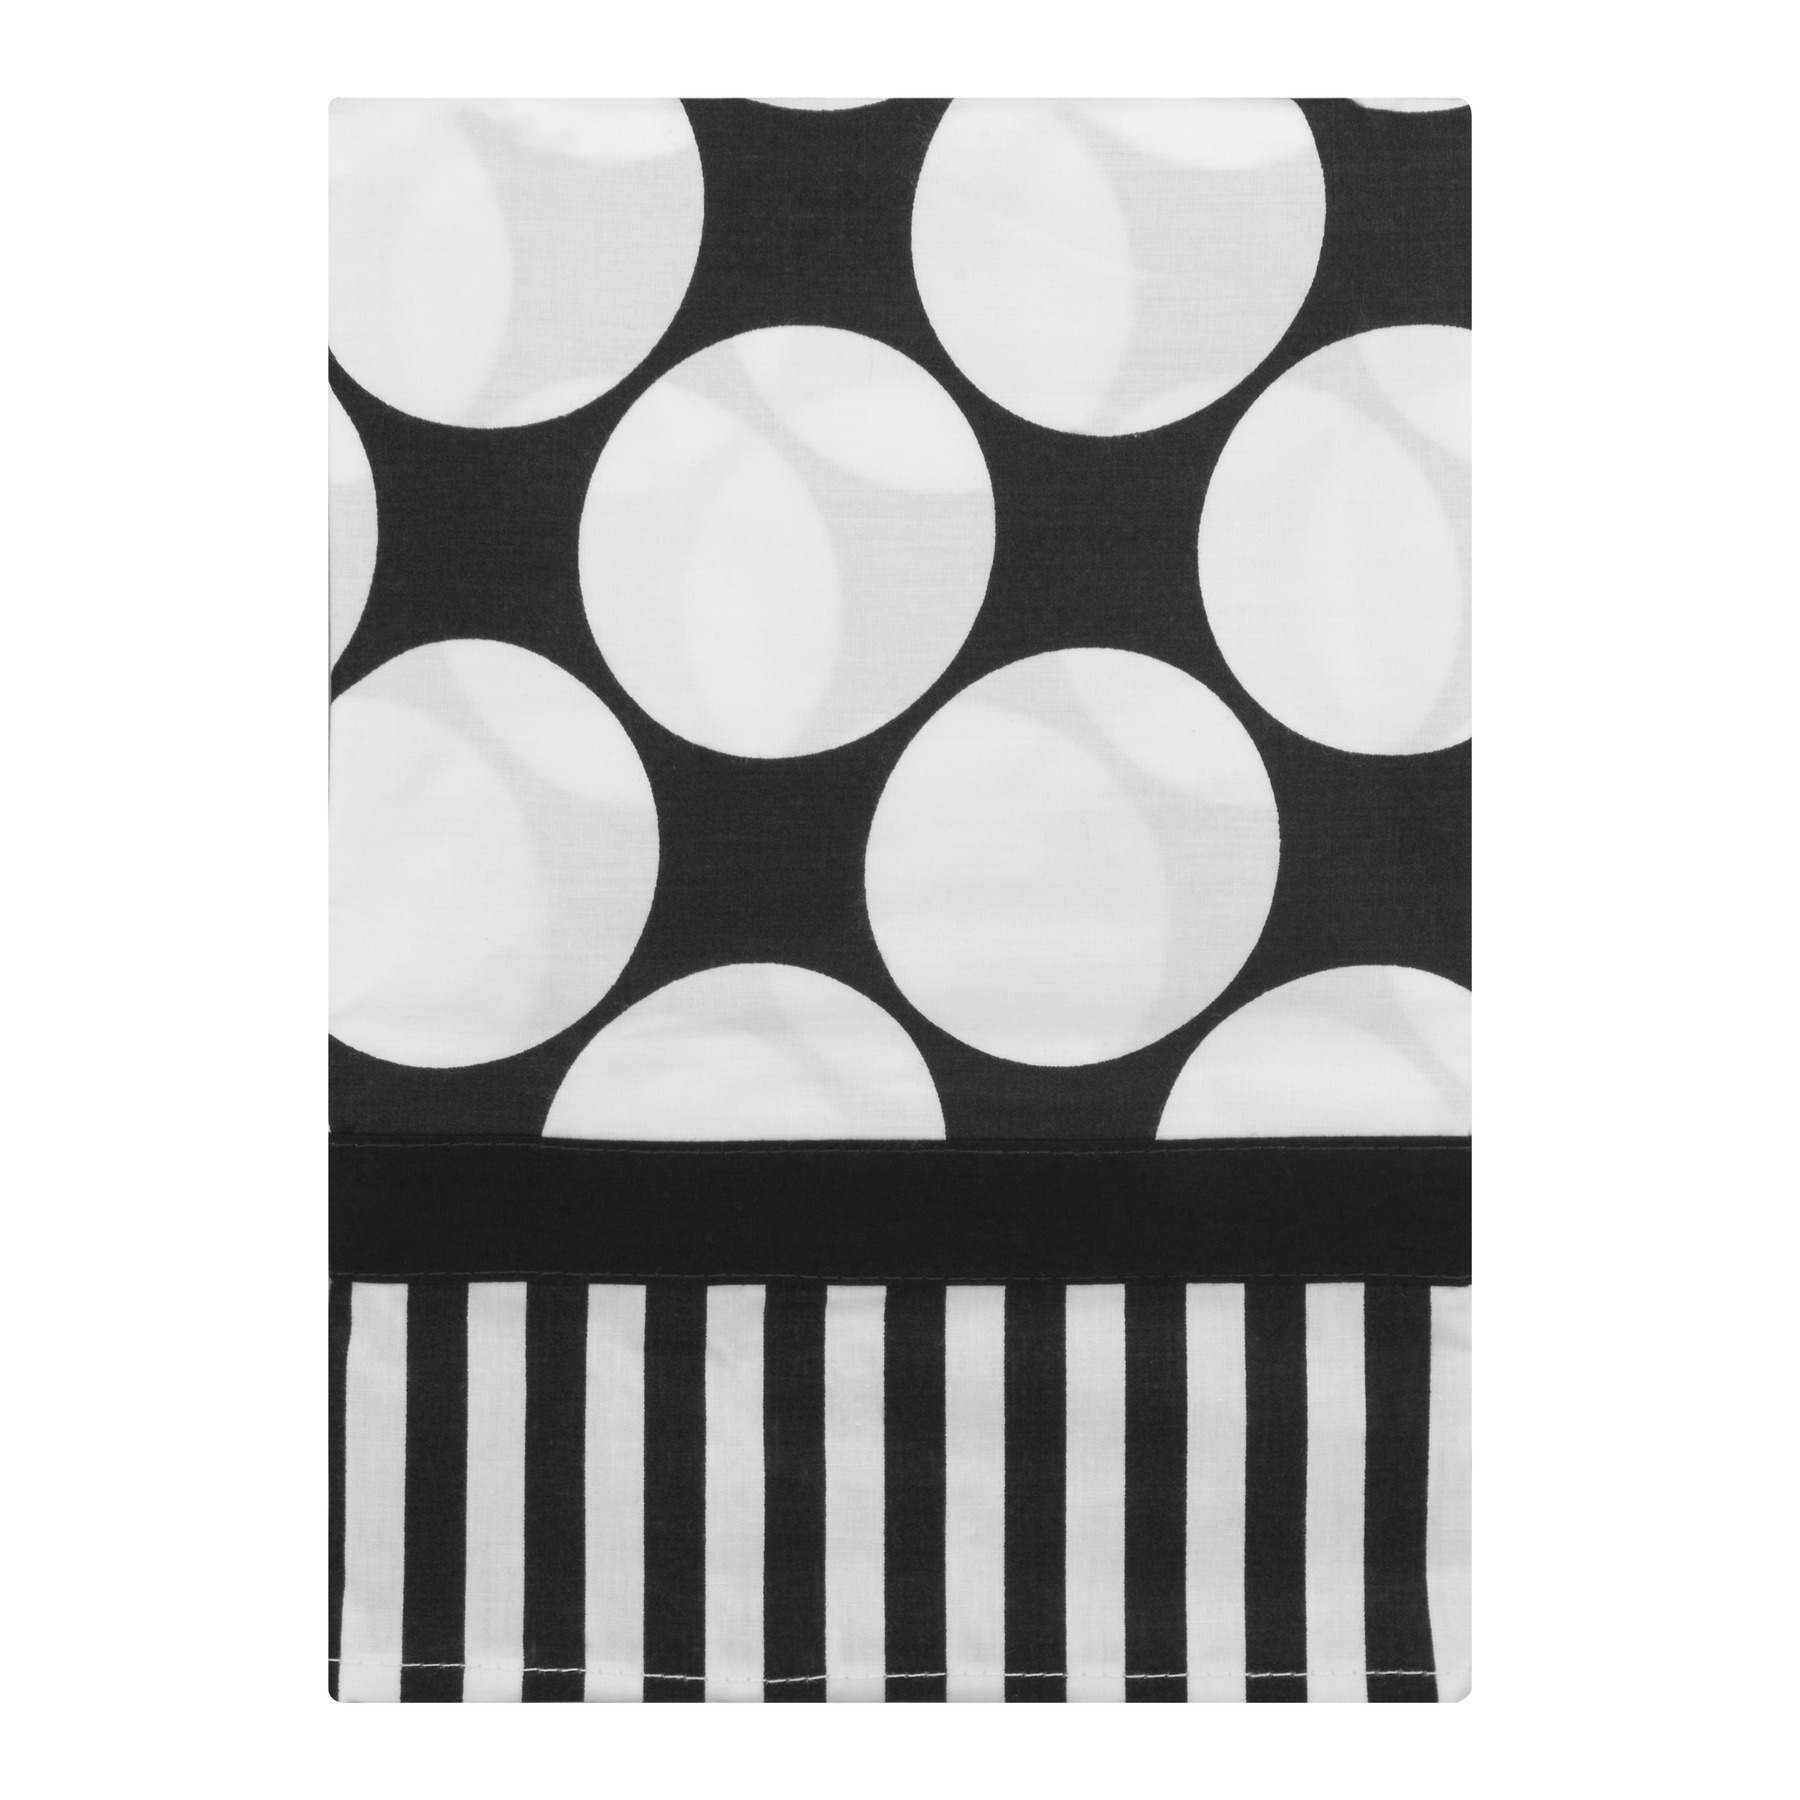 Bacati Window Valance Black White Dots Pin Stripes, 1.0 CT by Bacati